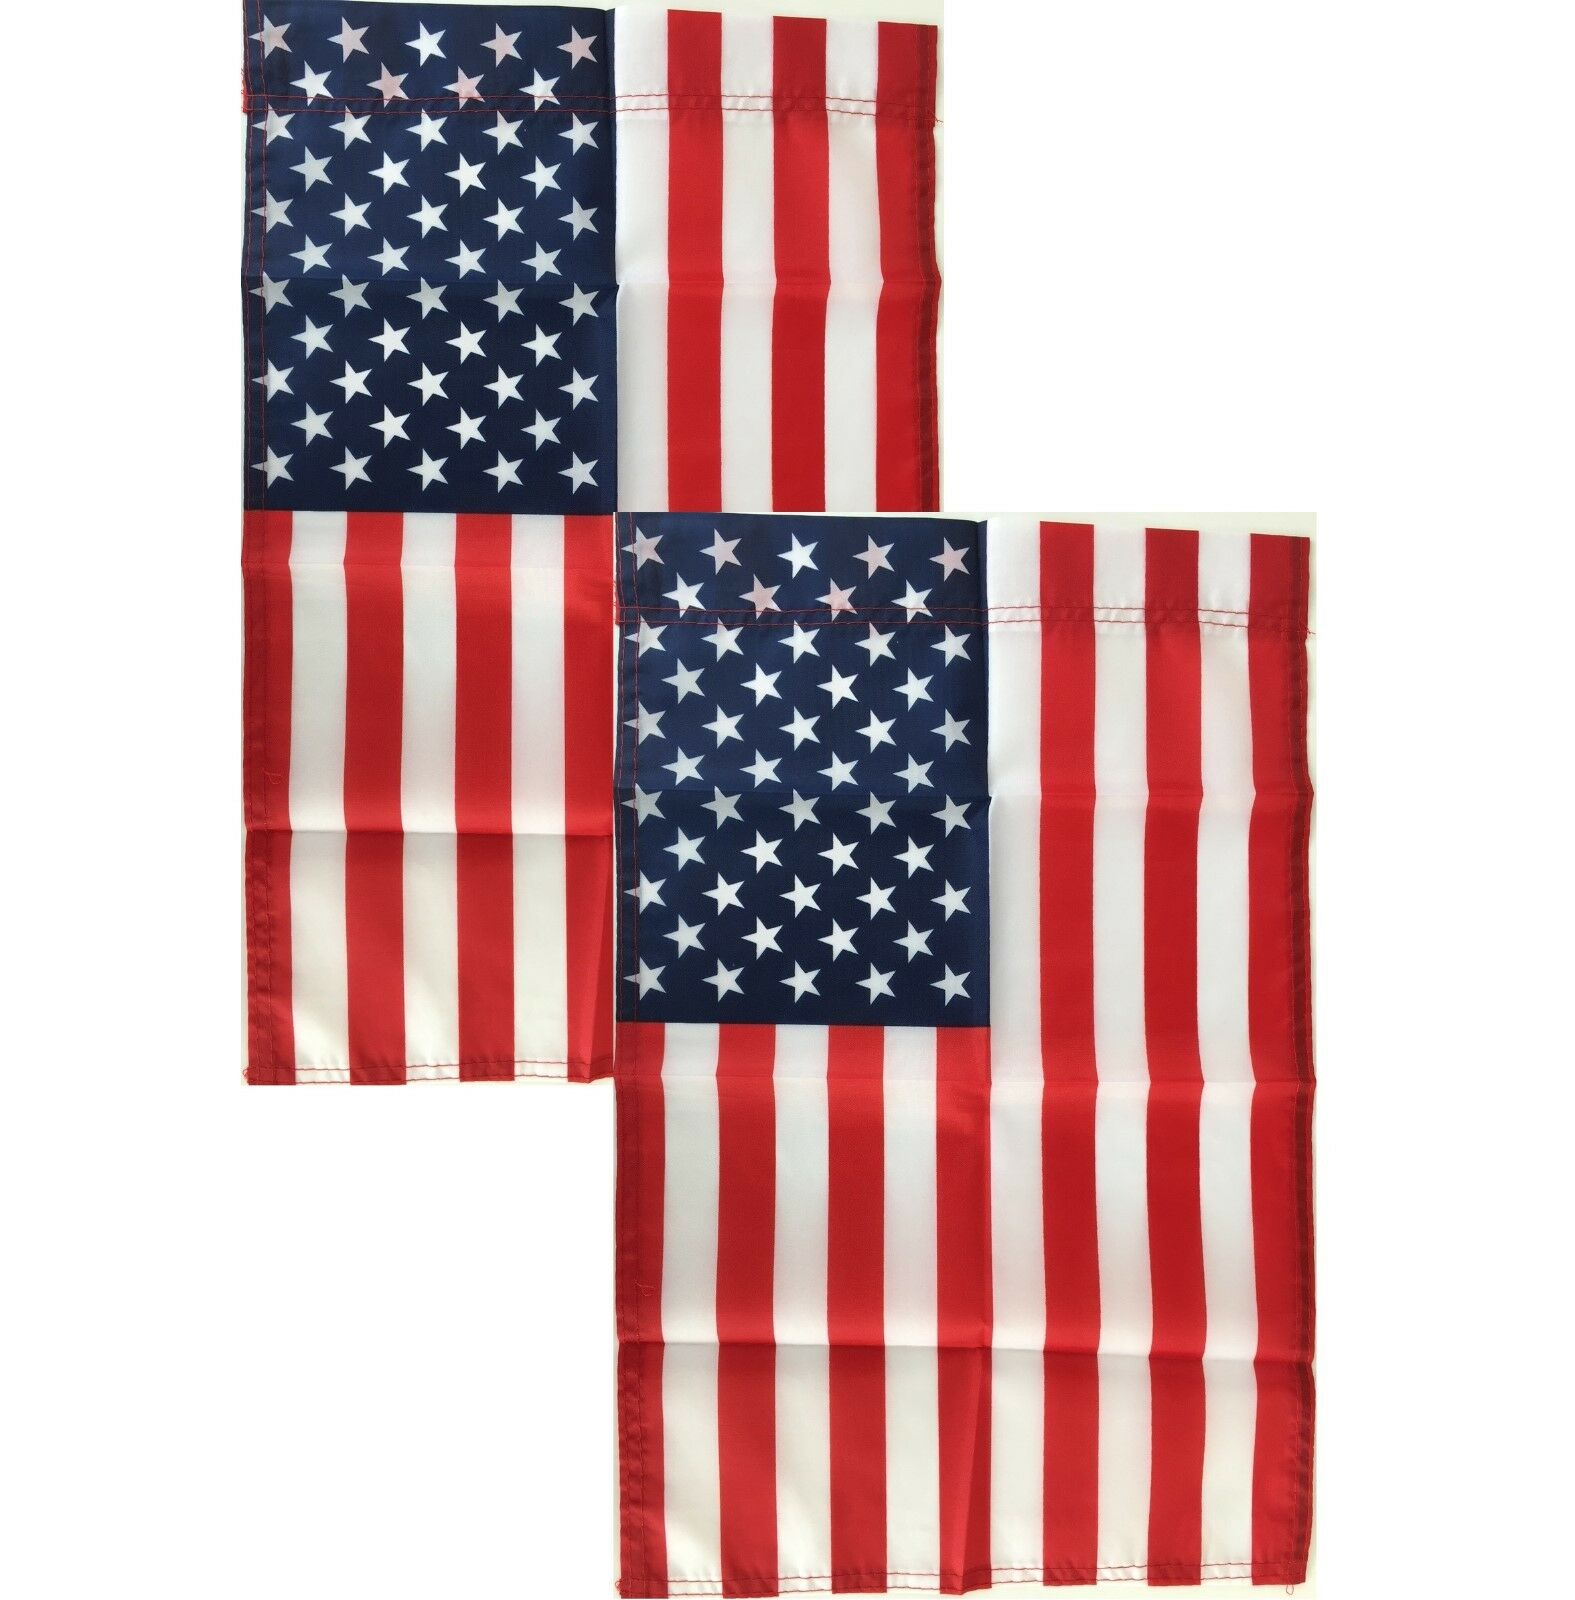 American Garden Flags 12x18 - 2 Pack - United States of Amer